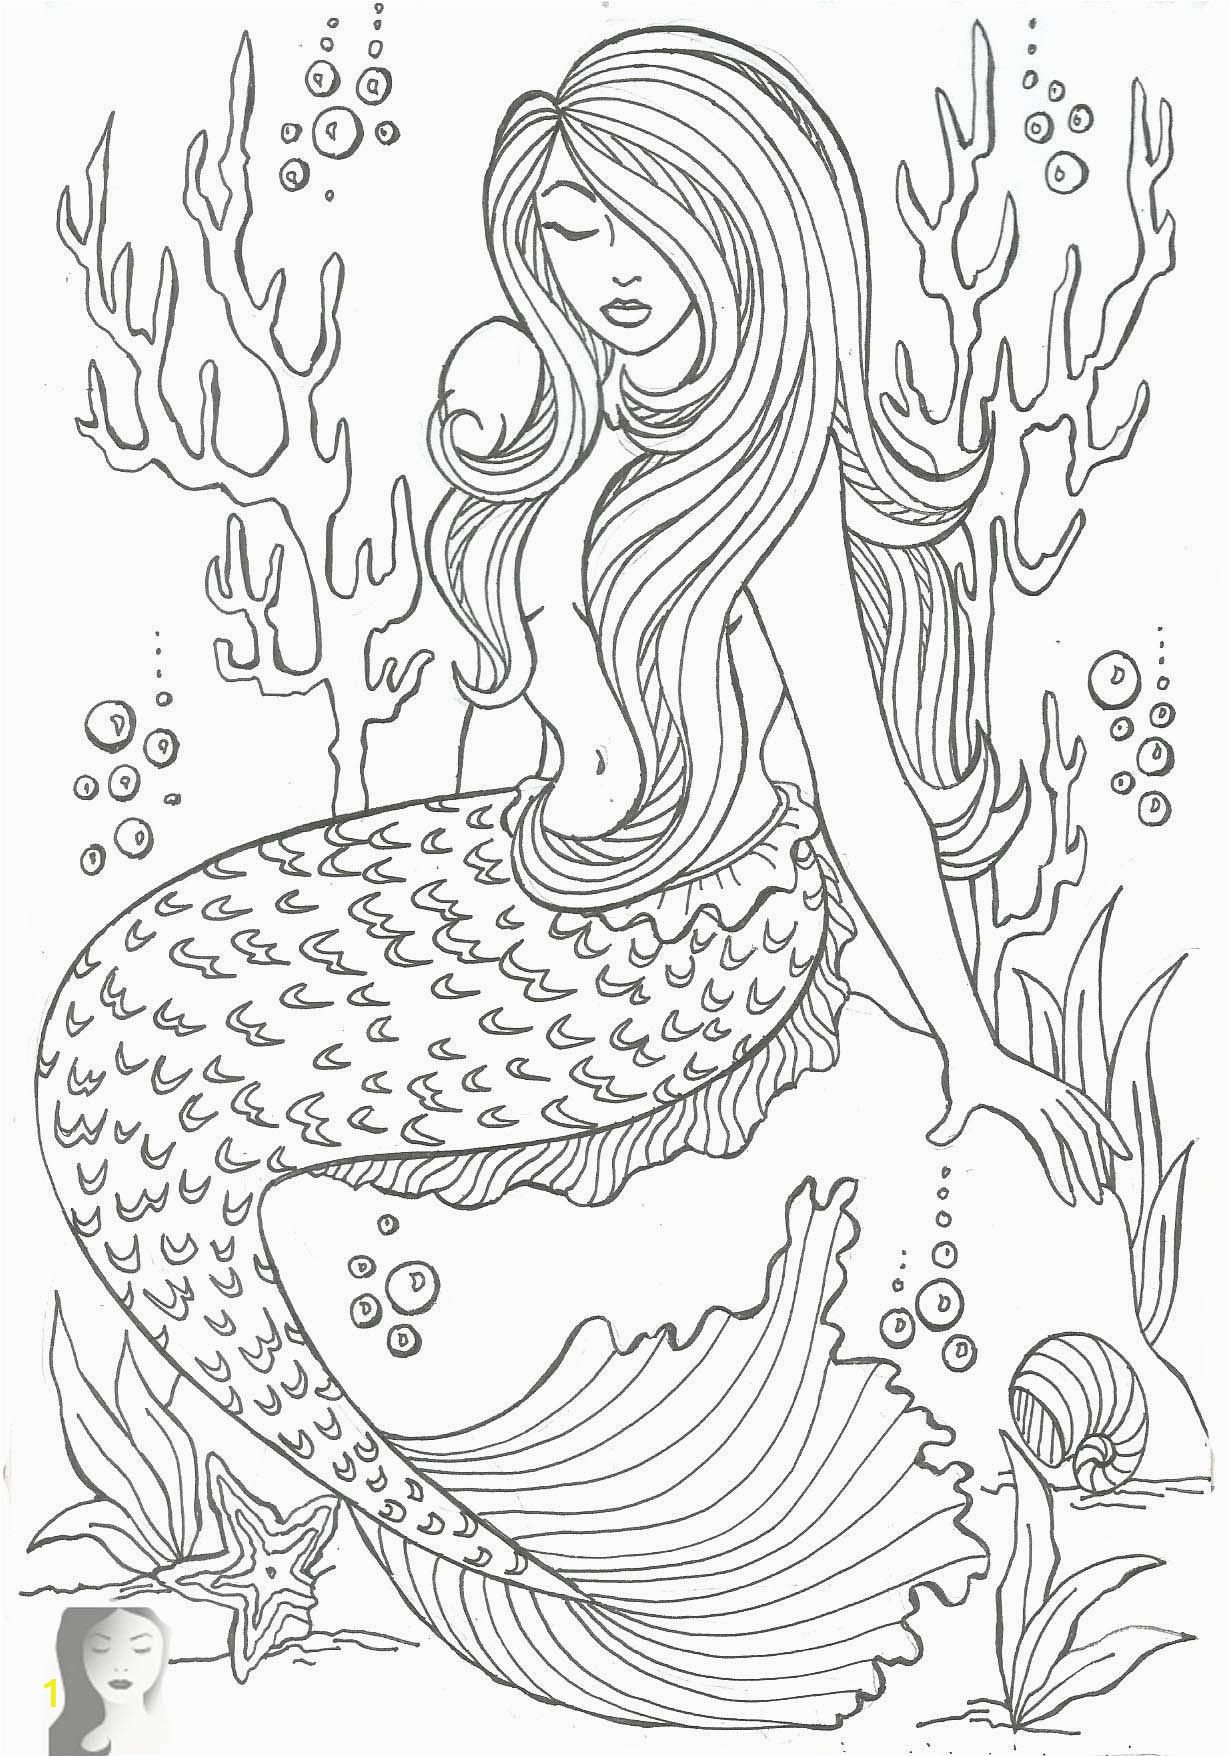 online coloring book for adults fun pages mermaid pdf printable kids